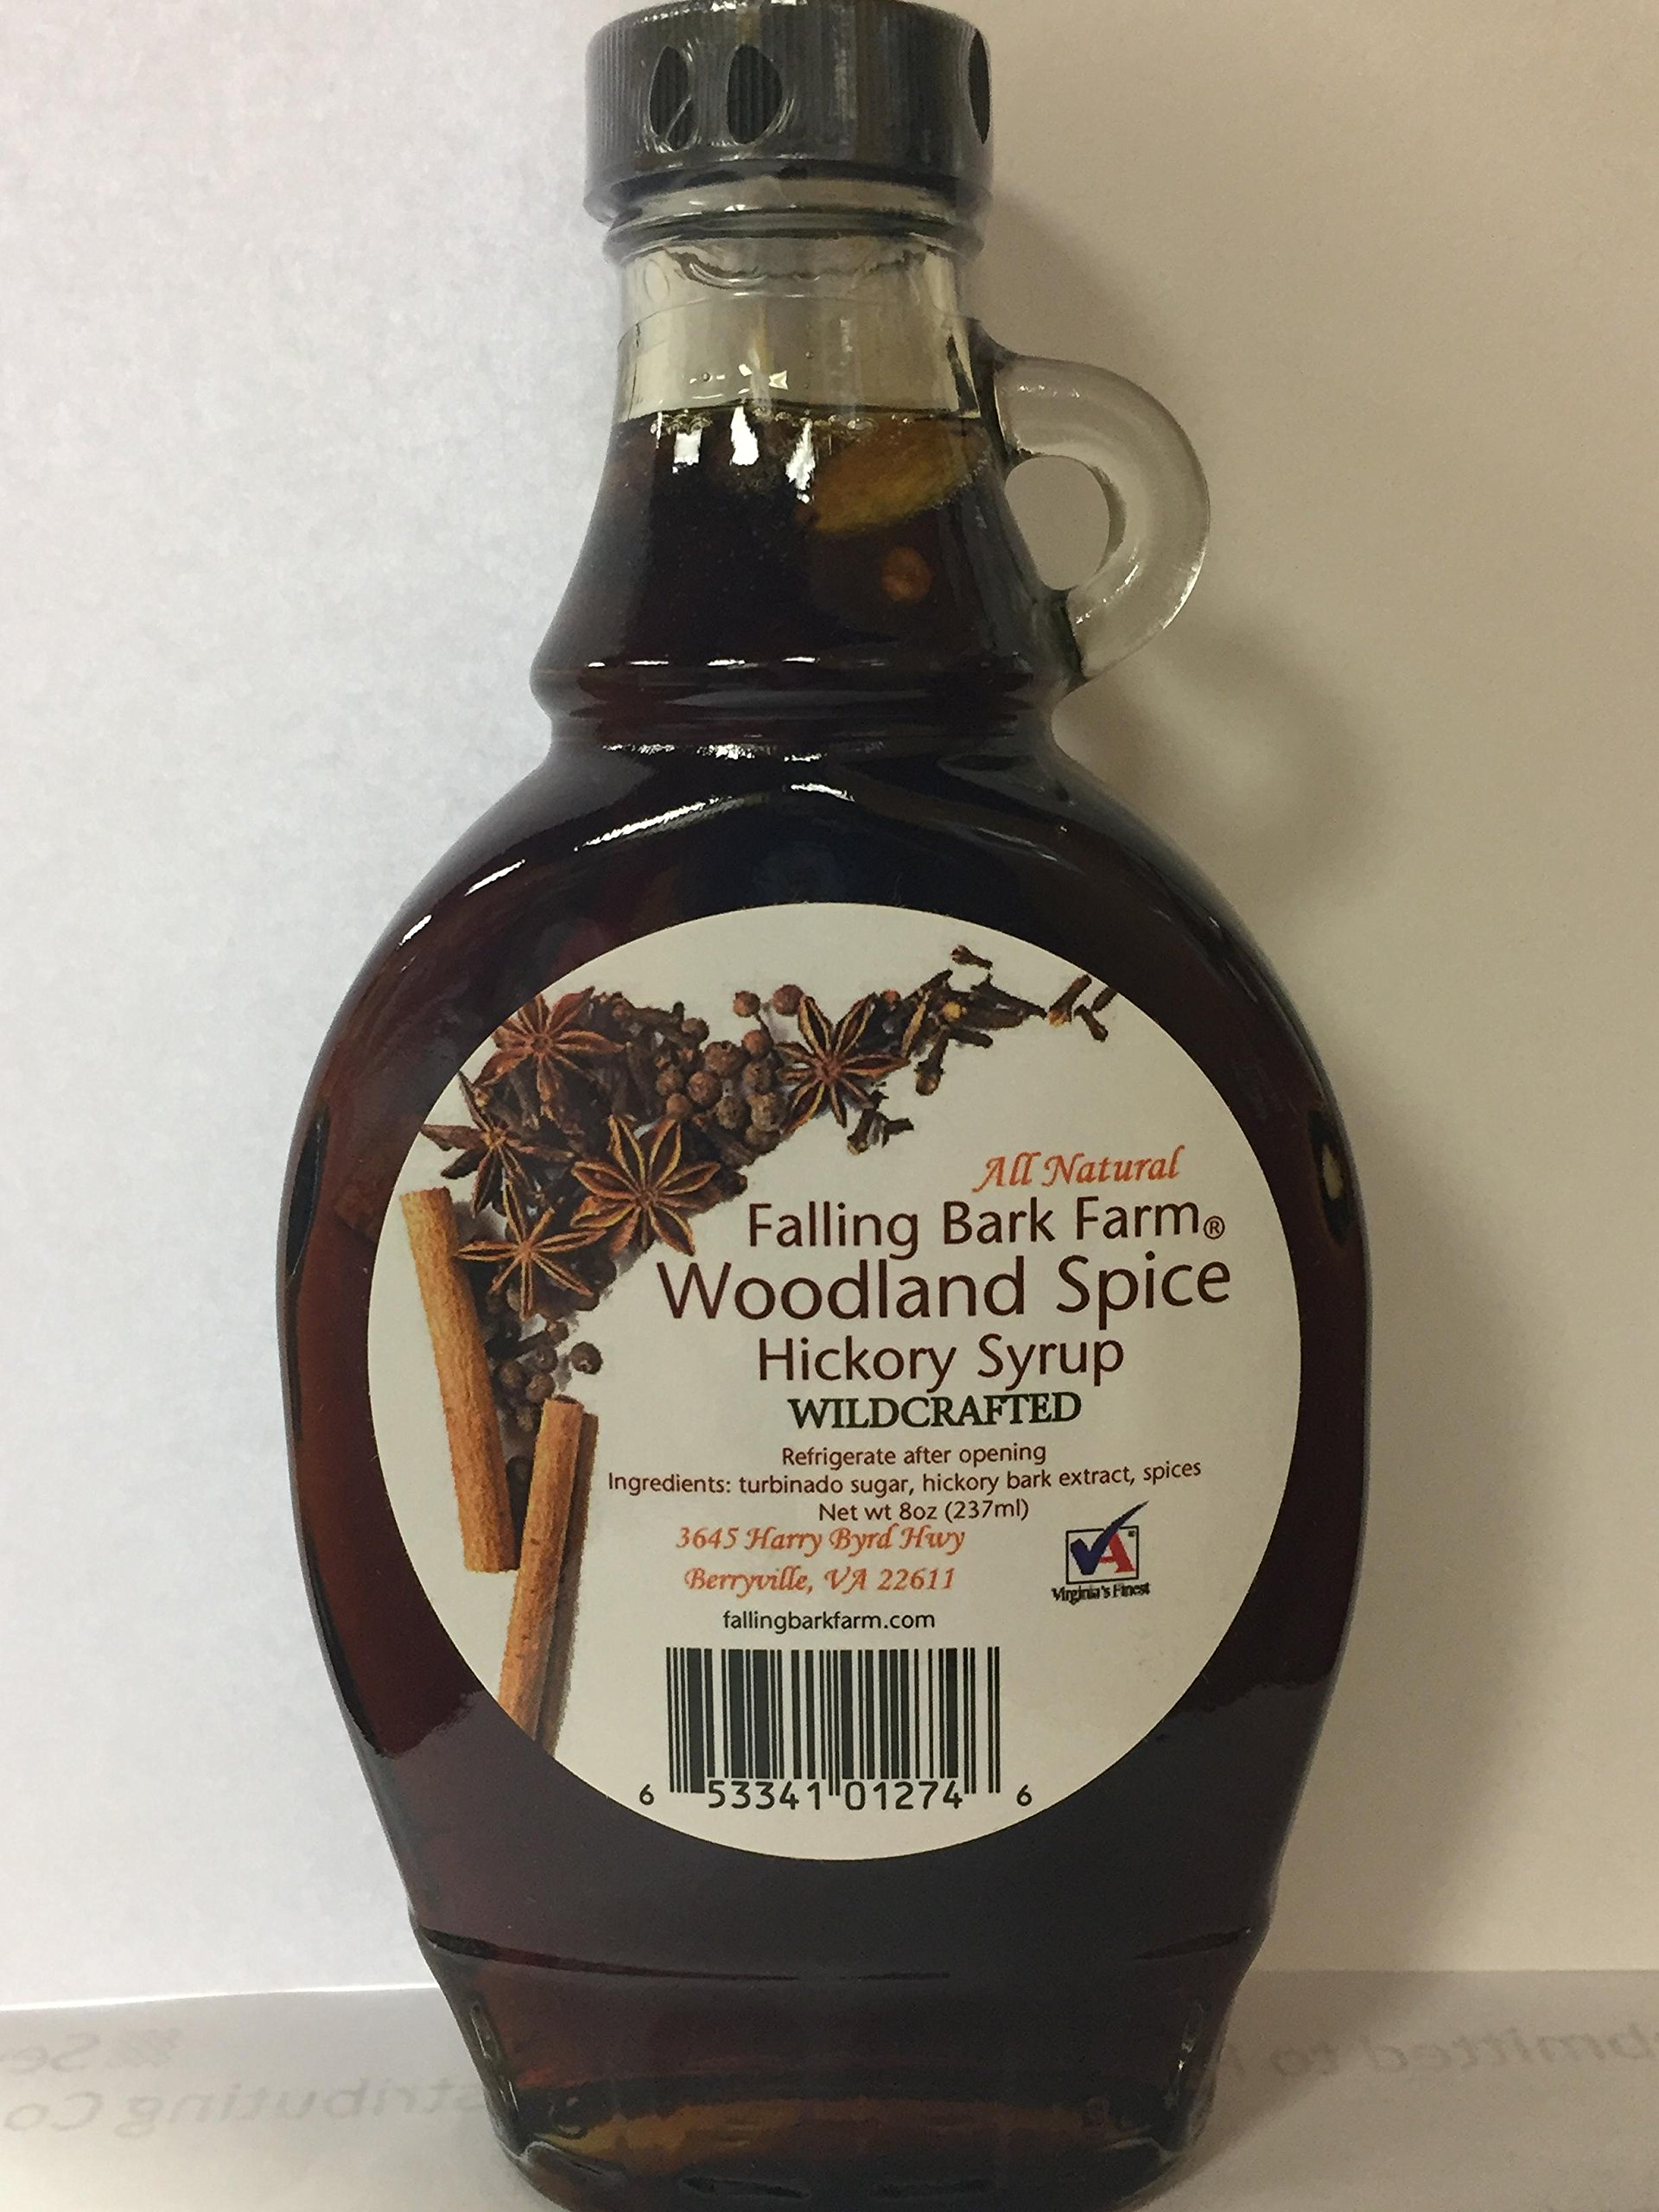 Falling Bark Farm Woodland Spice Hickory Syrup - All Natural from the Shagbark Hickory Tree